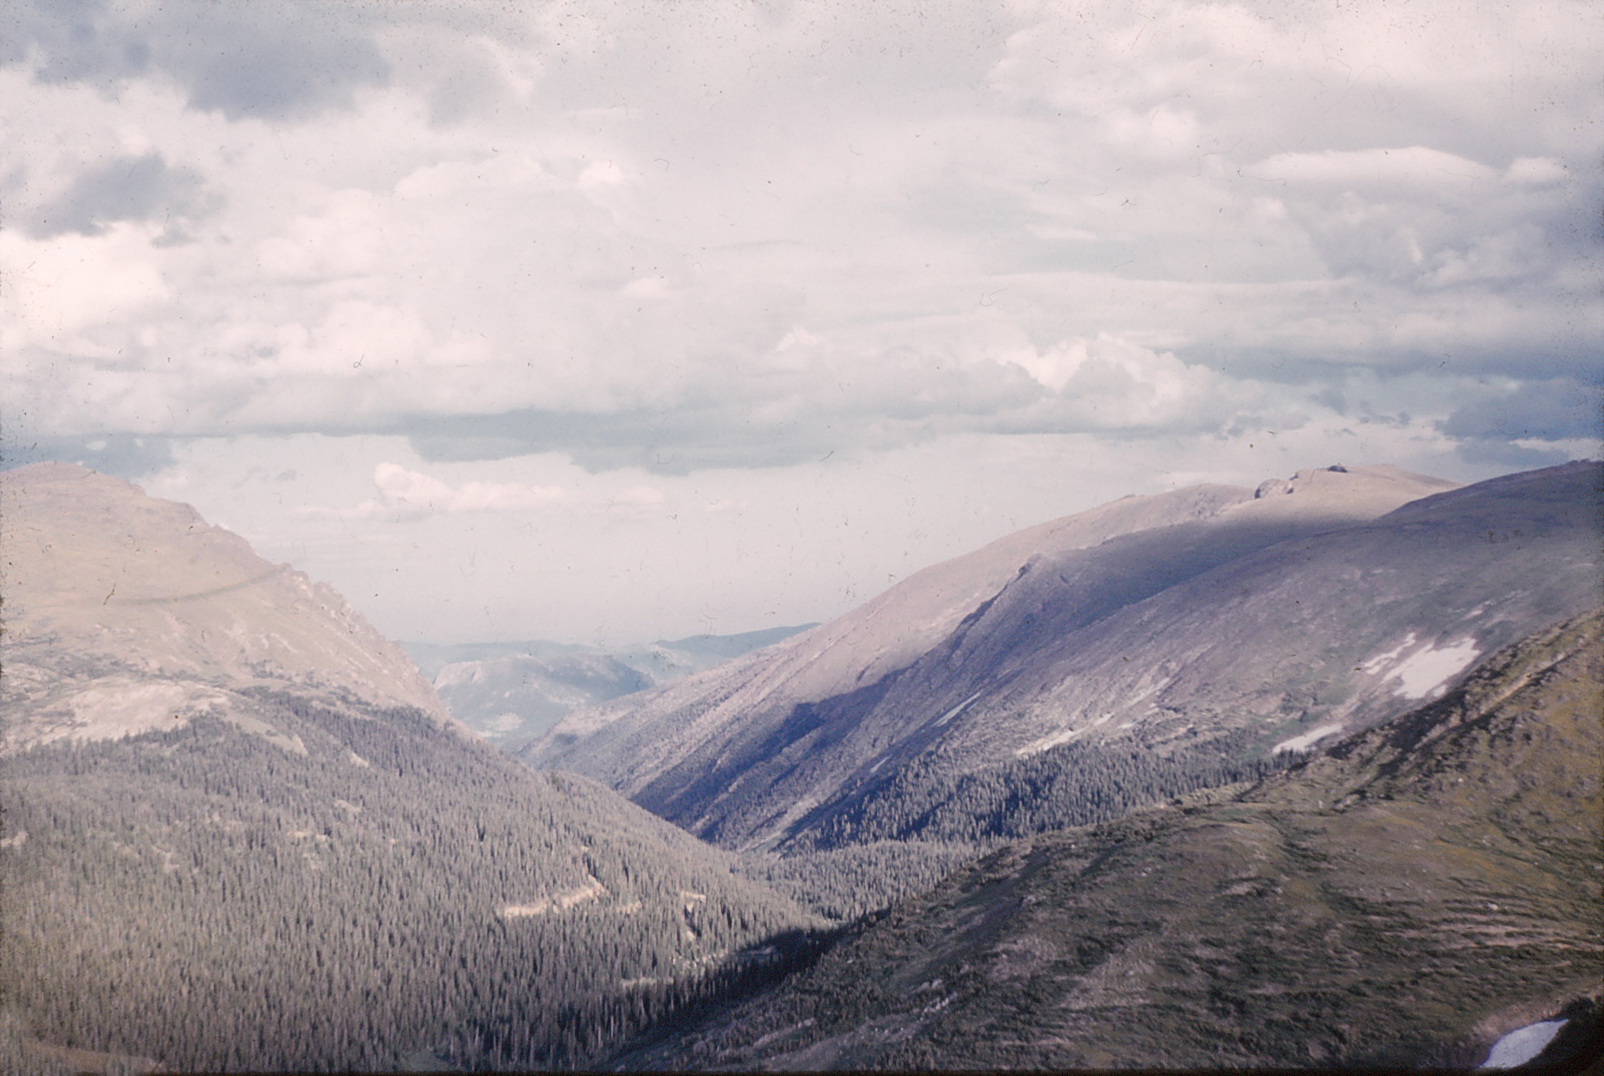 Yellowstone National Park around 1960.